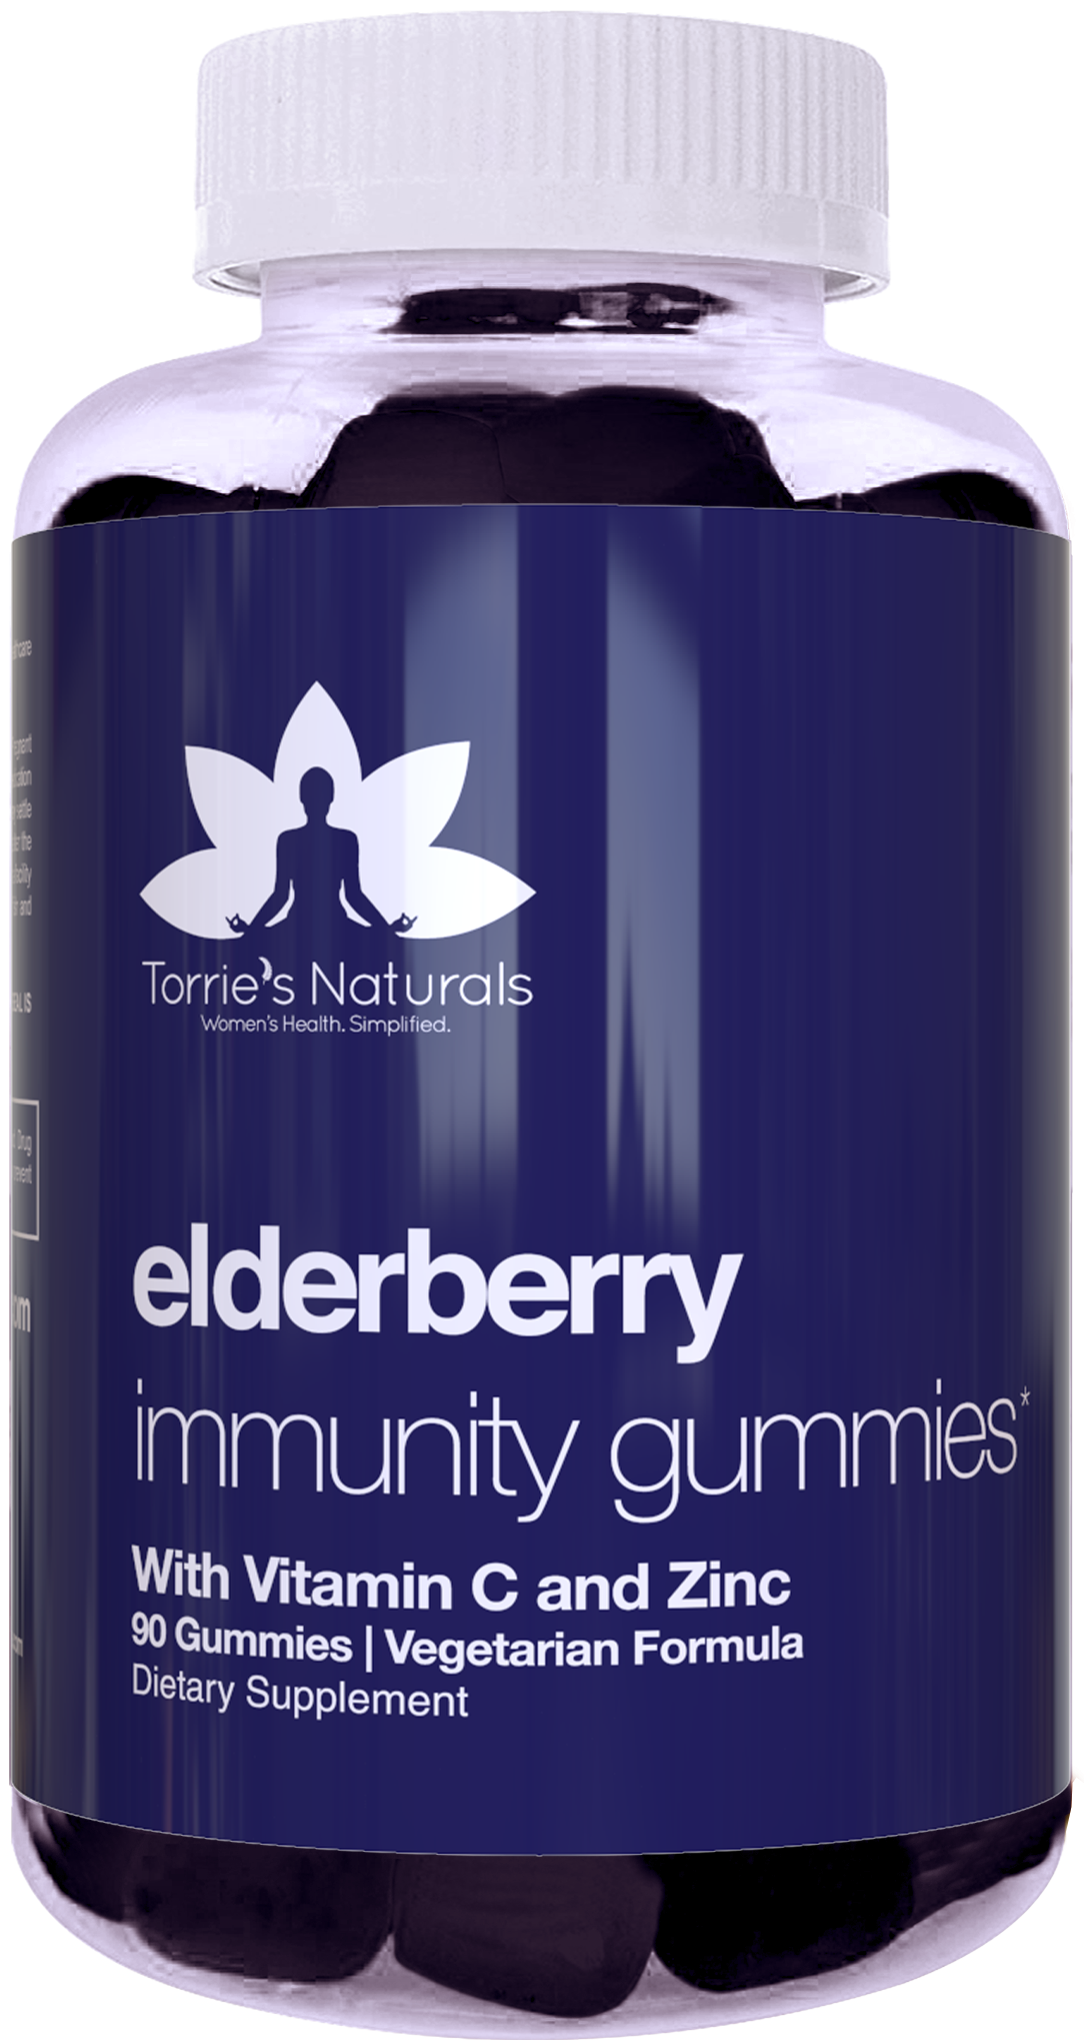 Elderberry Gummies, Immunity Support* for Kids & Adults, Sambucus Supplement with Zinc, Vitamin C - Vegetarian Formula